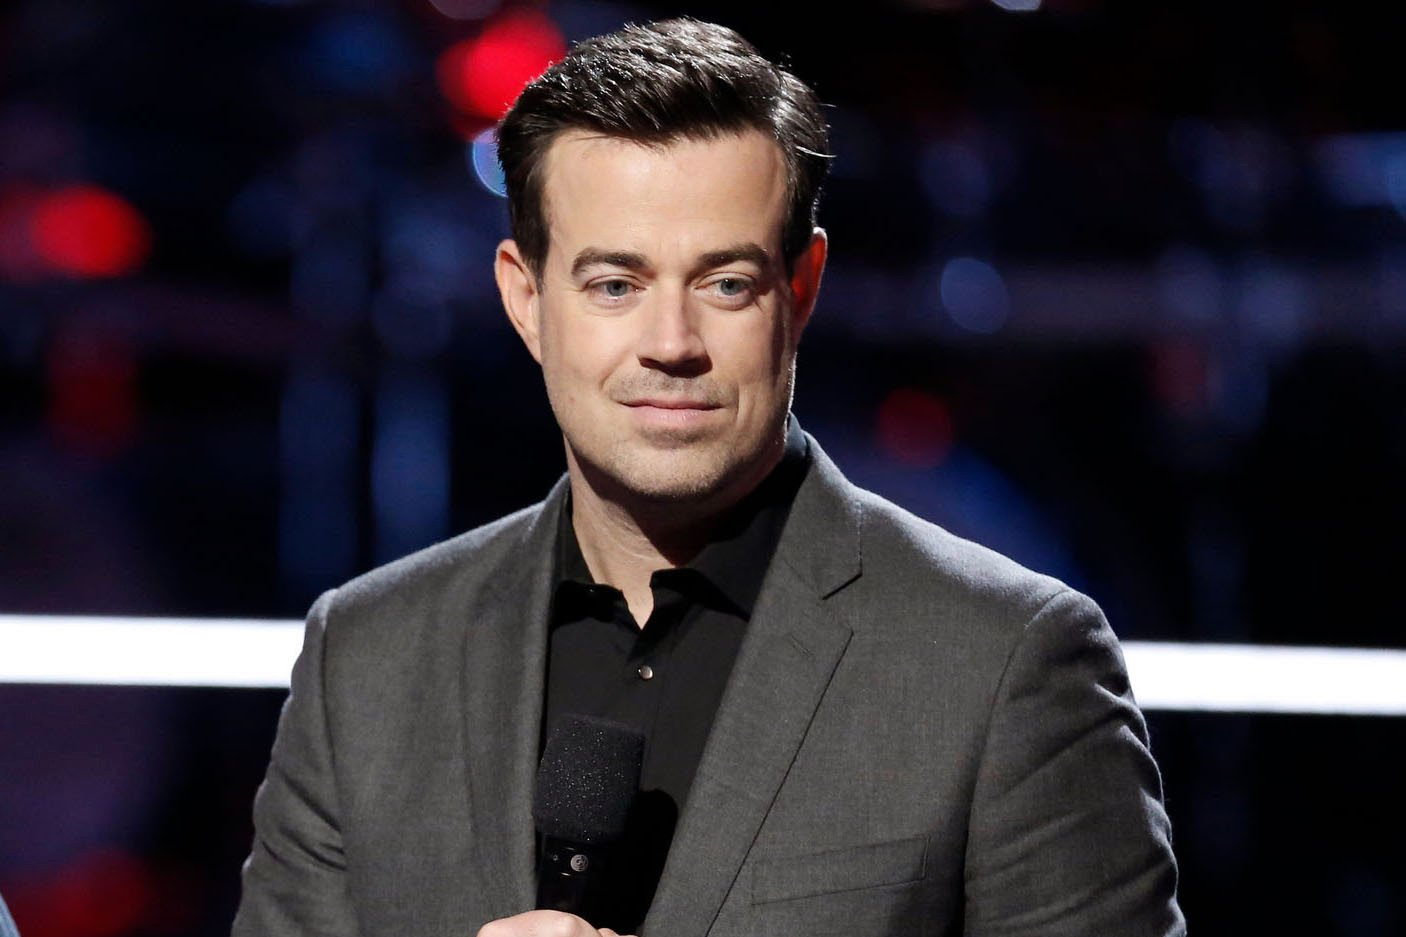 Carson Daly details struggle with anxiety